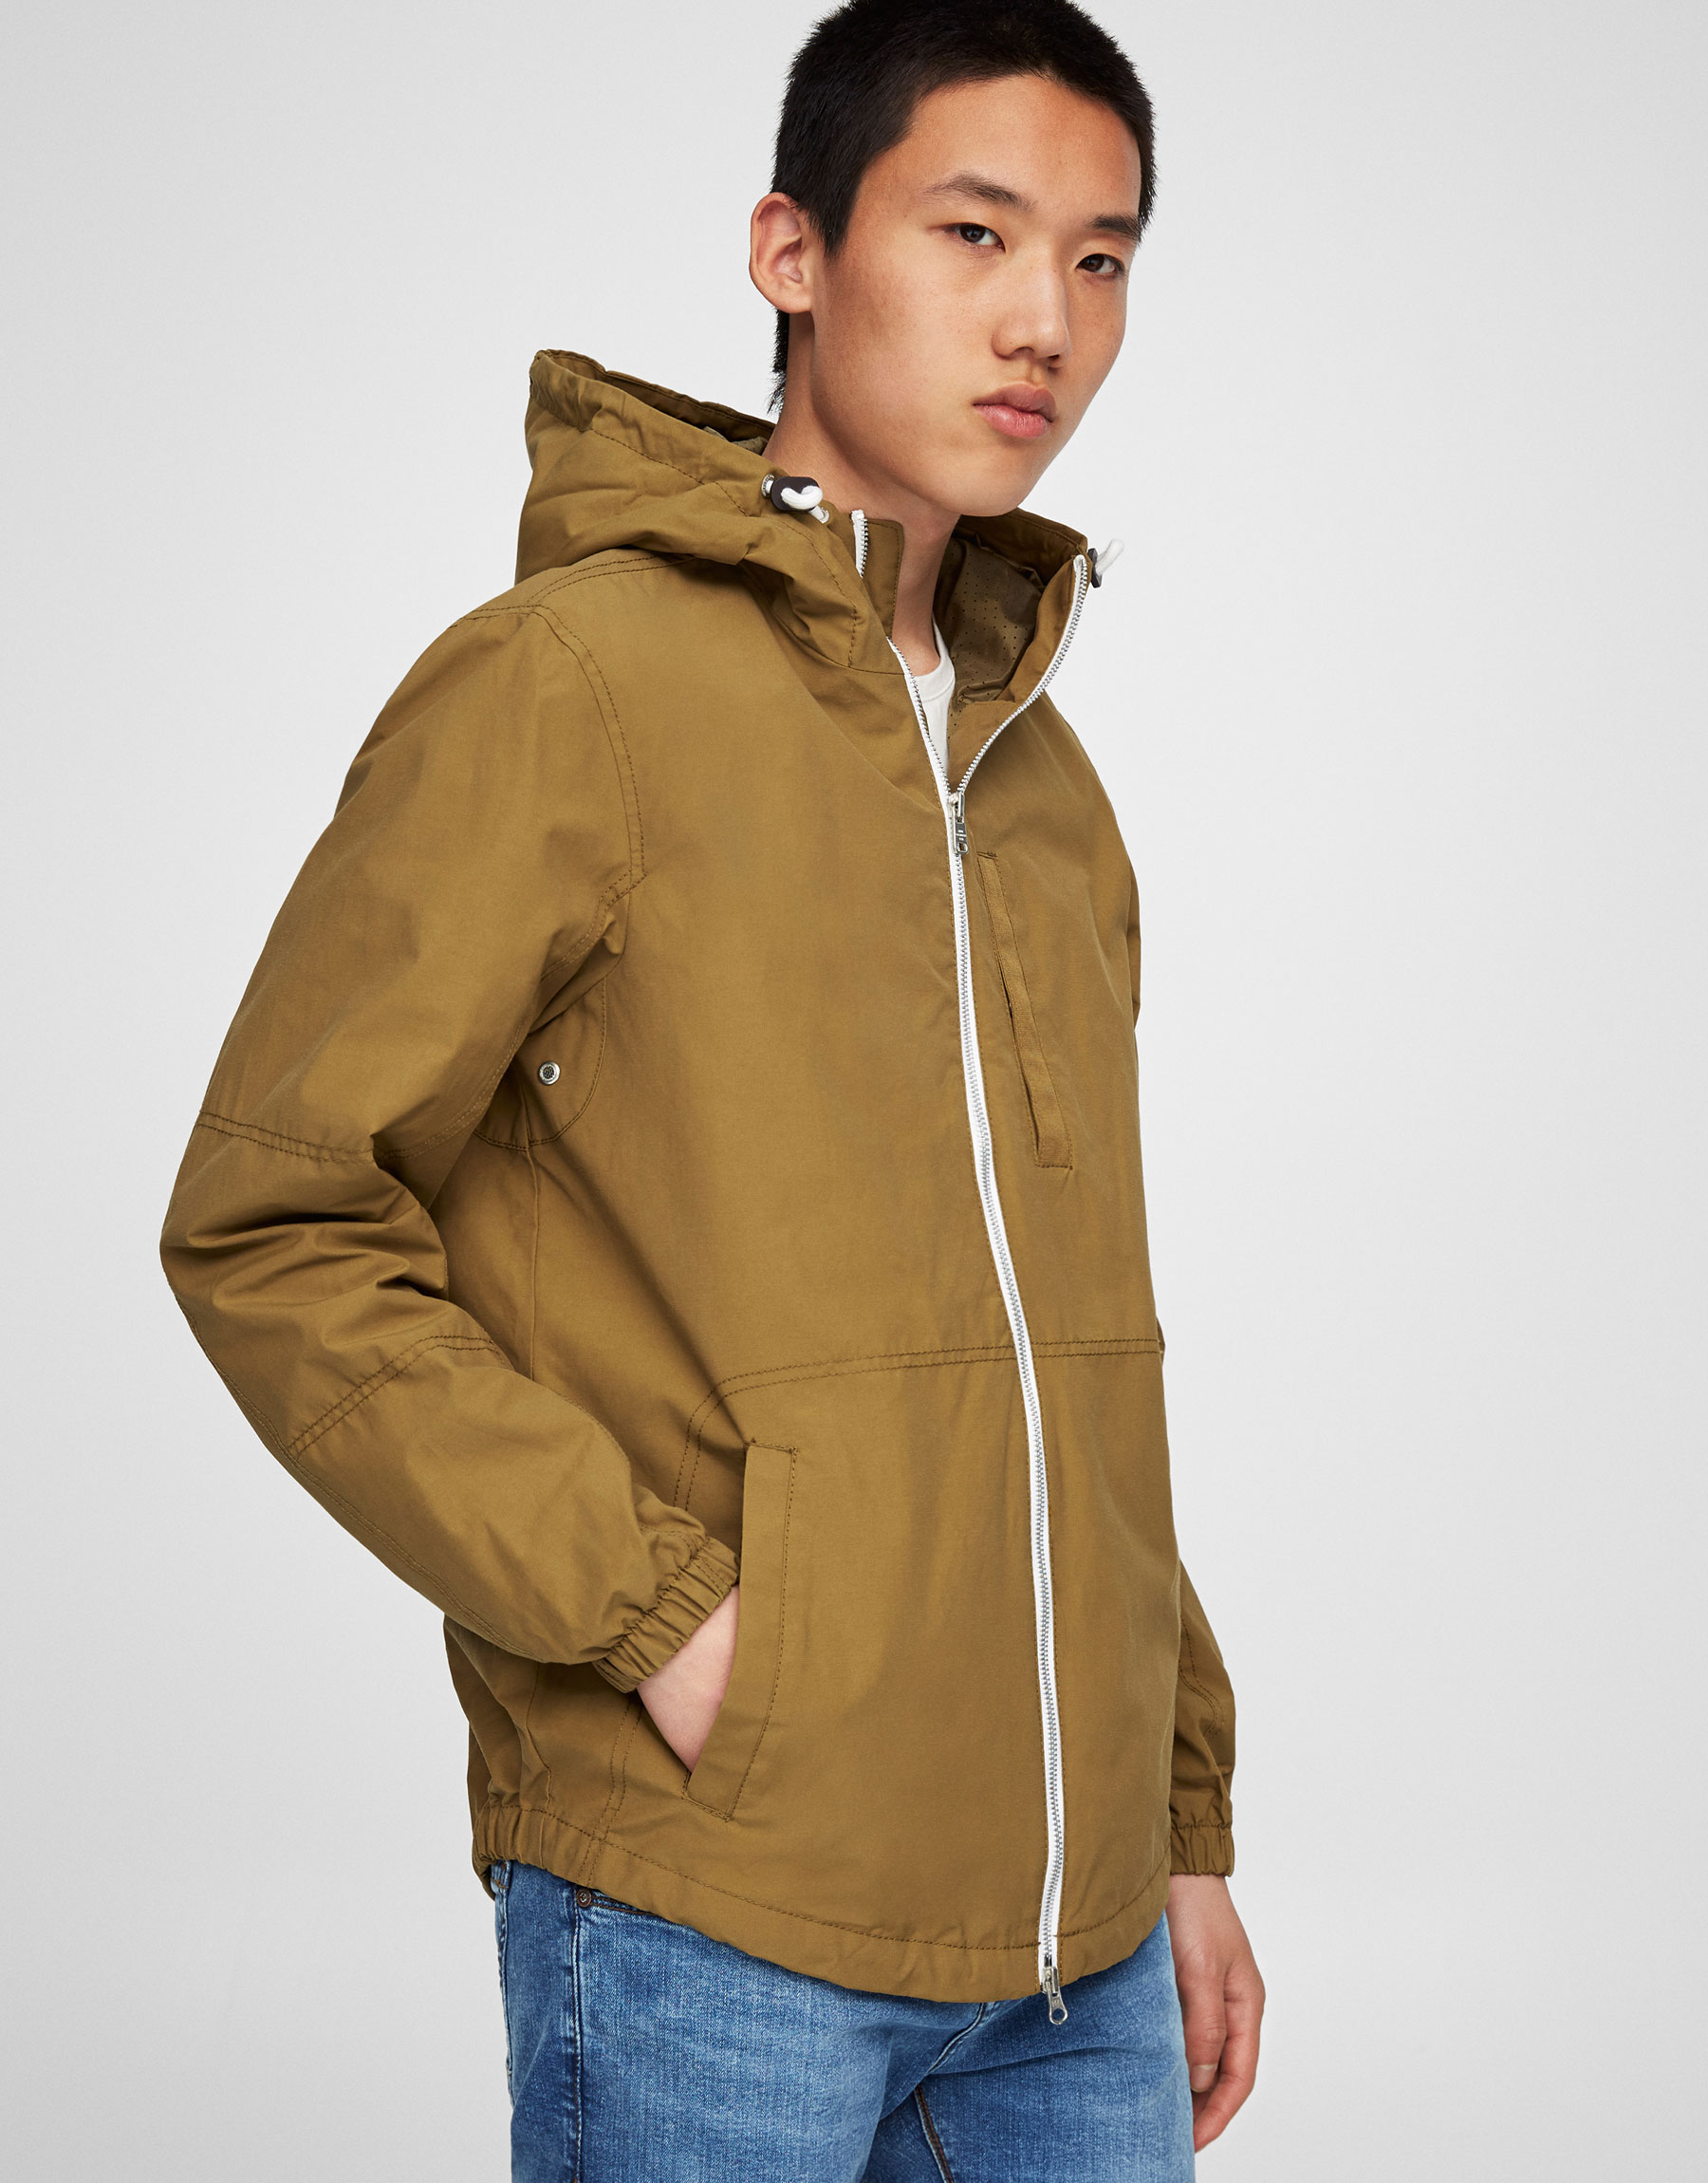 Colourful nylon jacket with hood